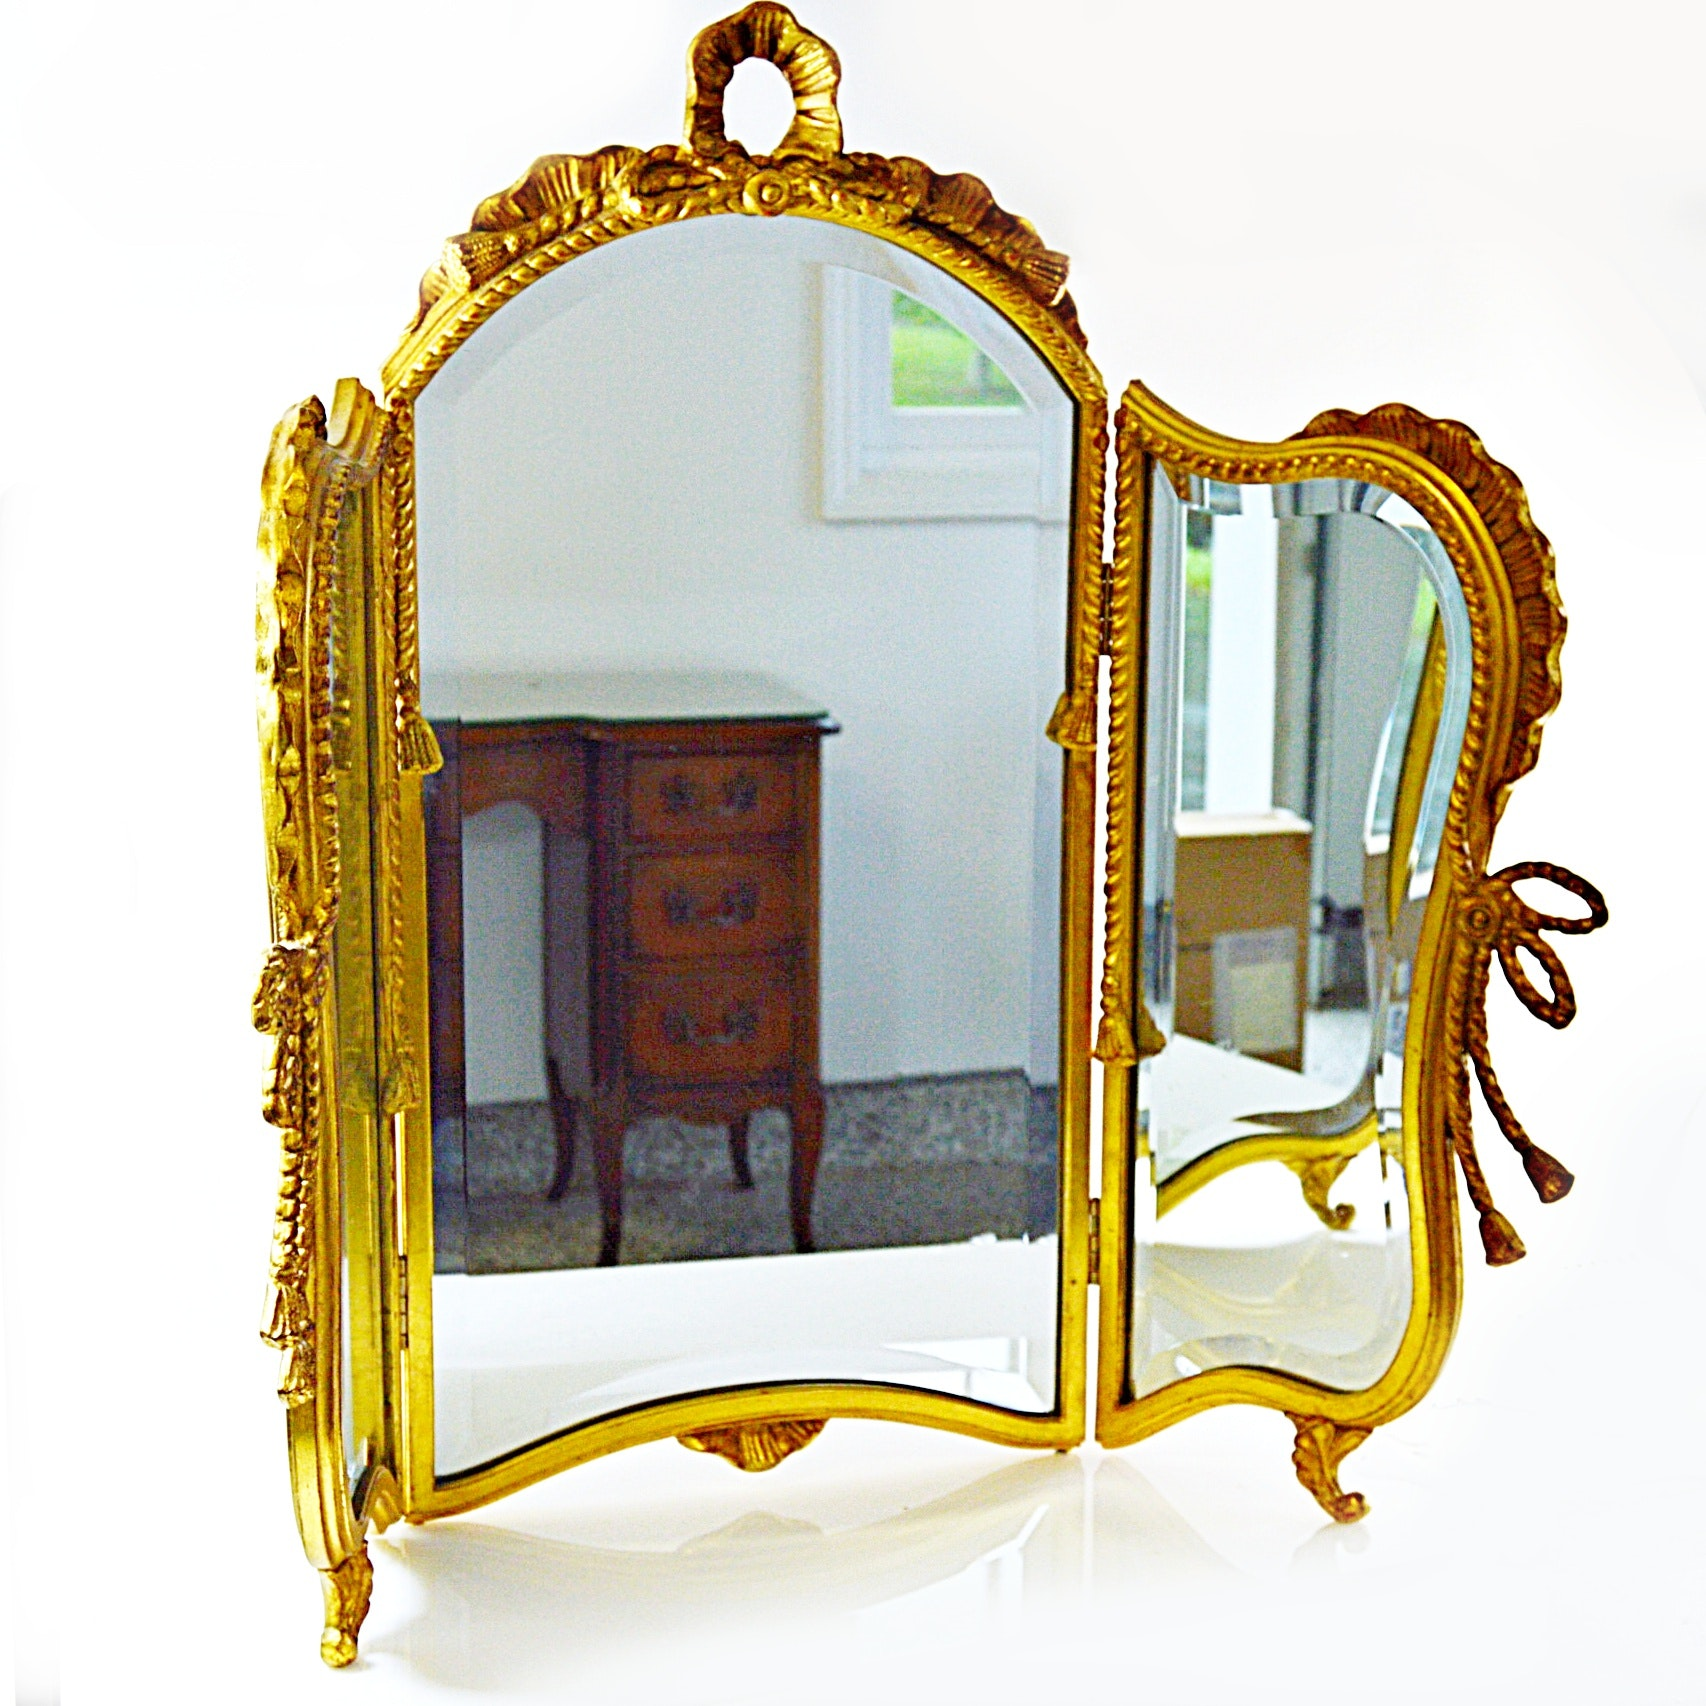 Gilded French Baroque Style Tri-Fold Beveled Vanity Mirror